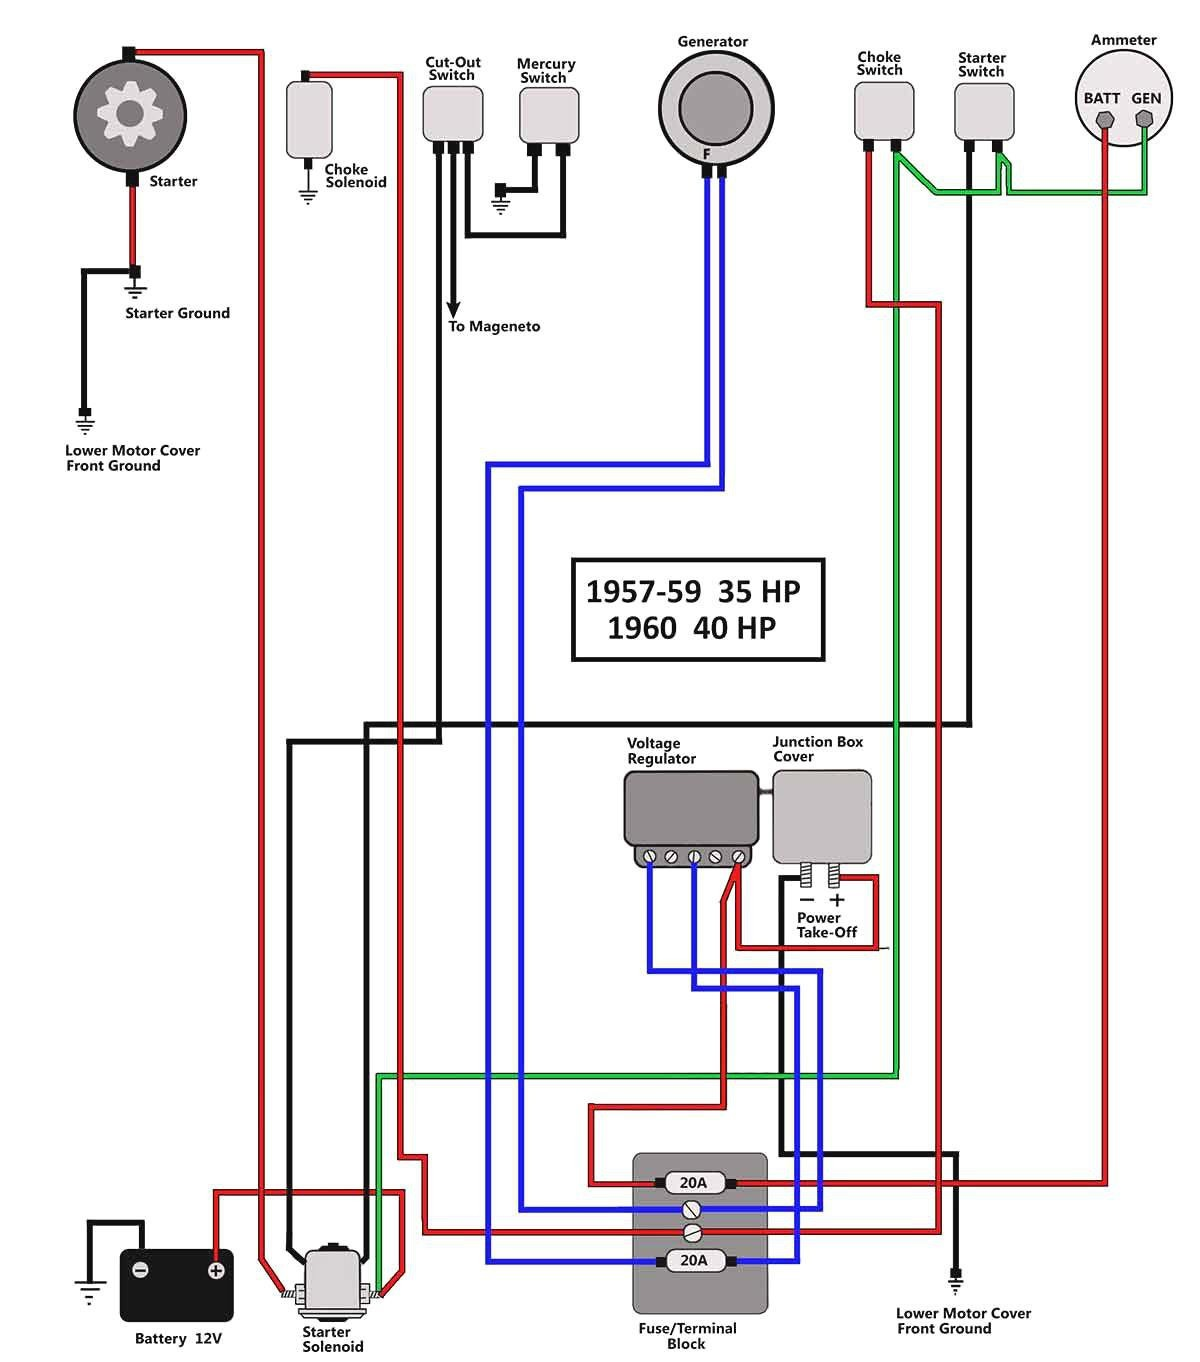 Tilt Relay 40 Hp Evinrude Wiring Diagram Wiring Diagram Services \u2022  2004 Mercury Outboard Wiring Harness Johnson 40 Hp Engine Wiring Diagram